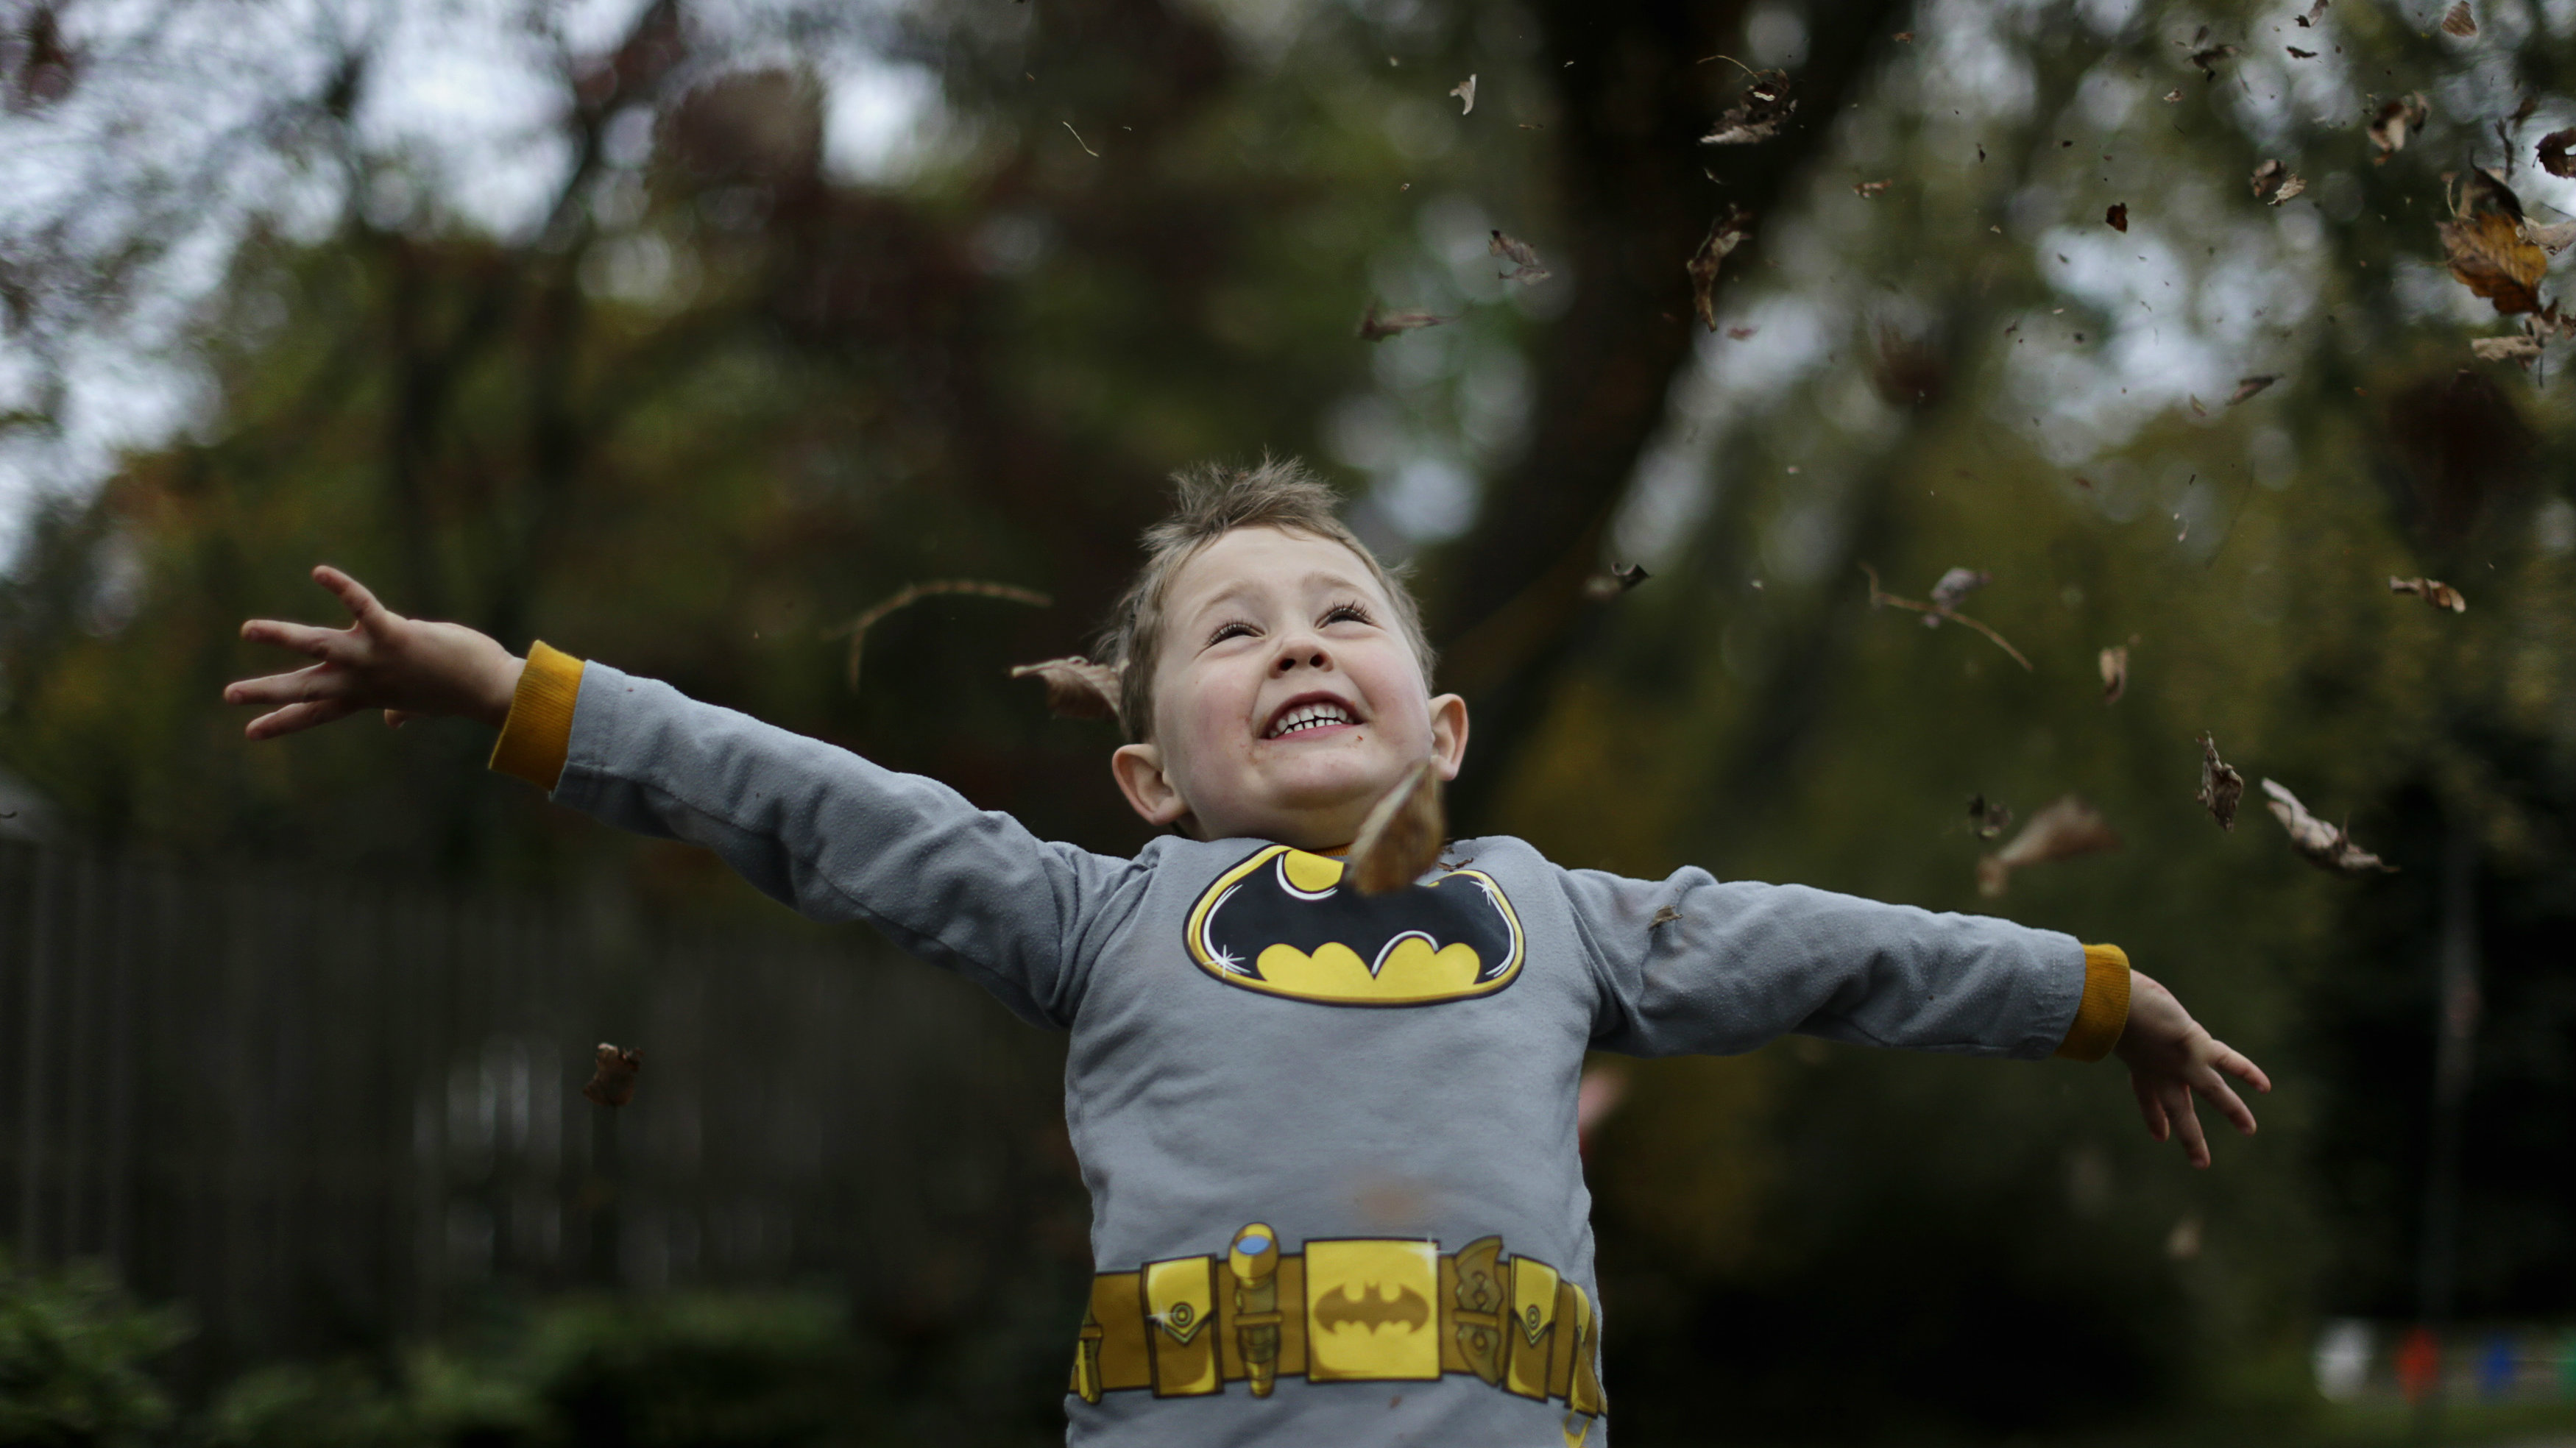 Rocamp, who dressed as Batman, celebrates Halloween at the Flint family's annual Halloween block party